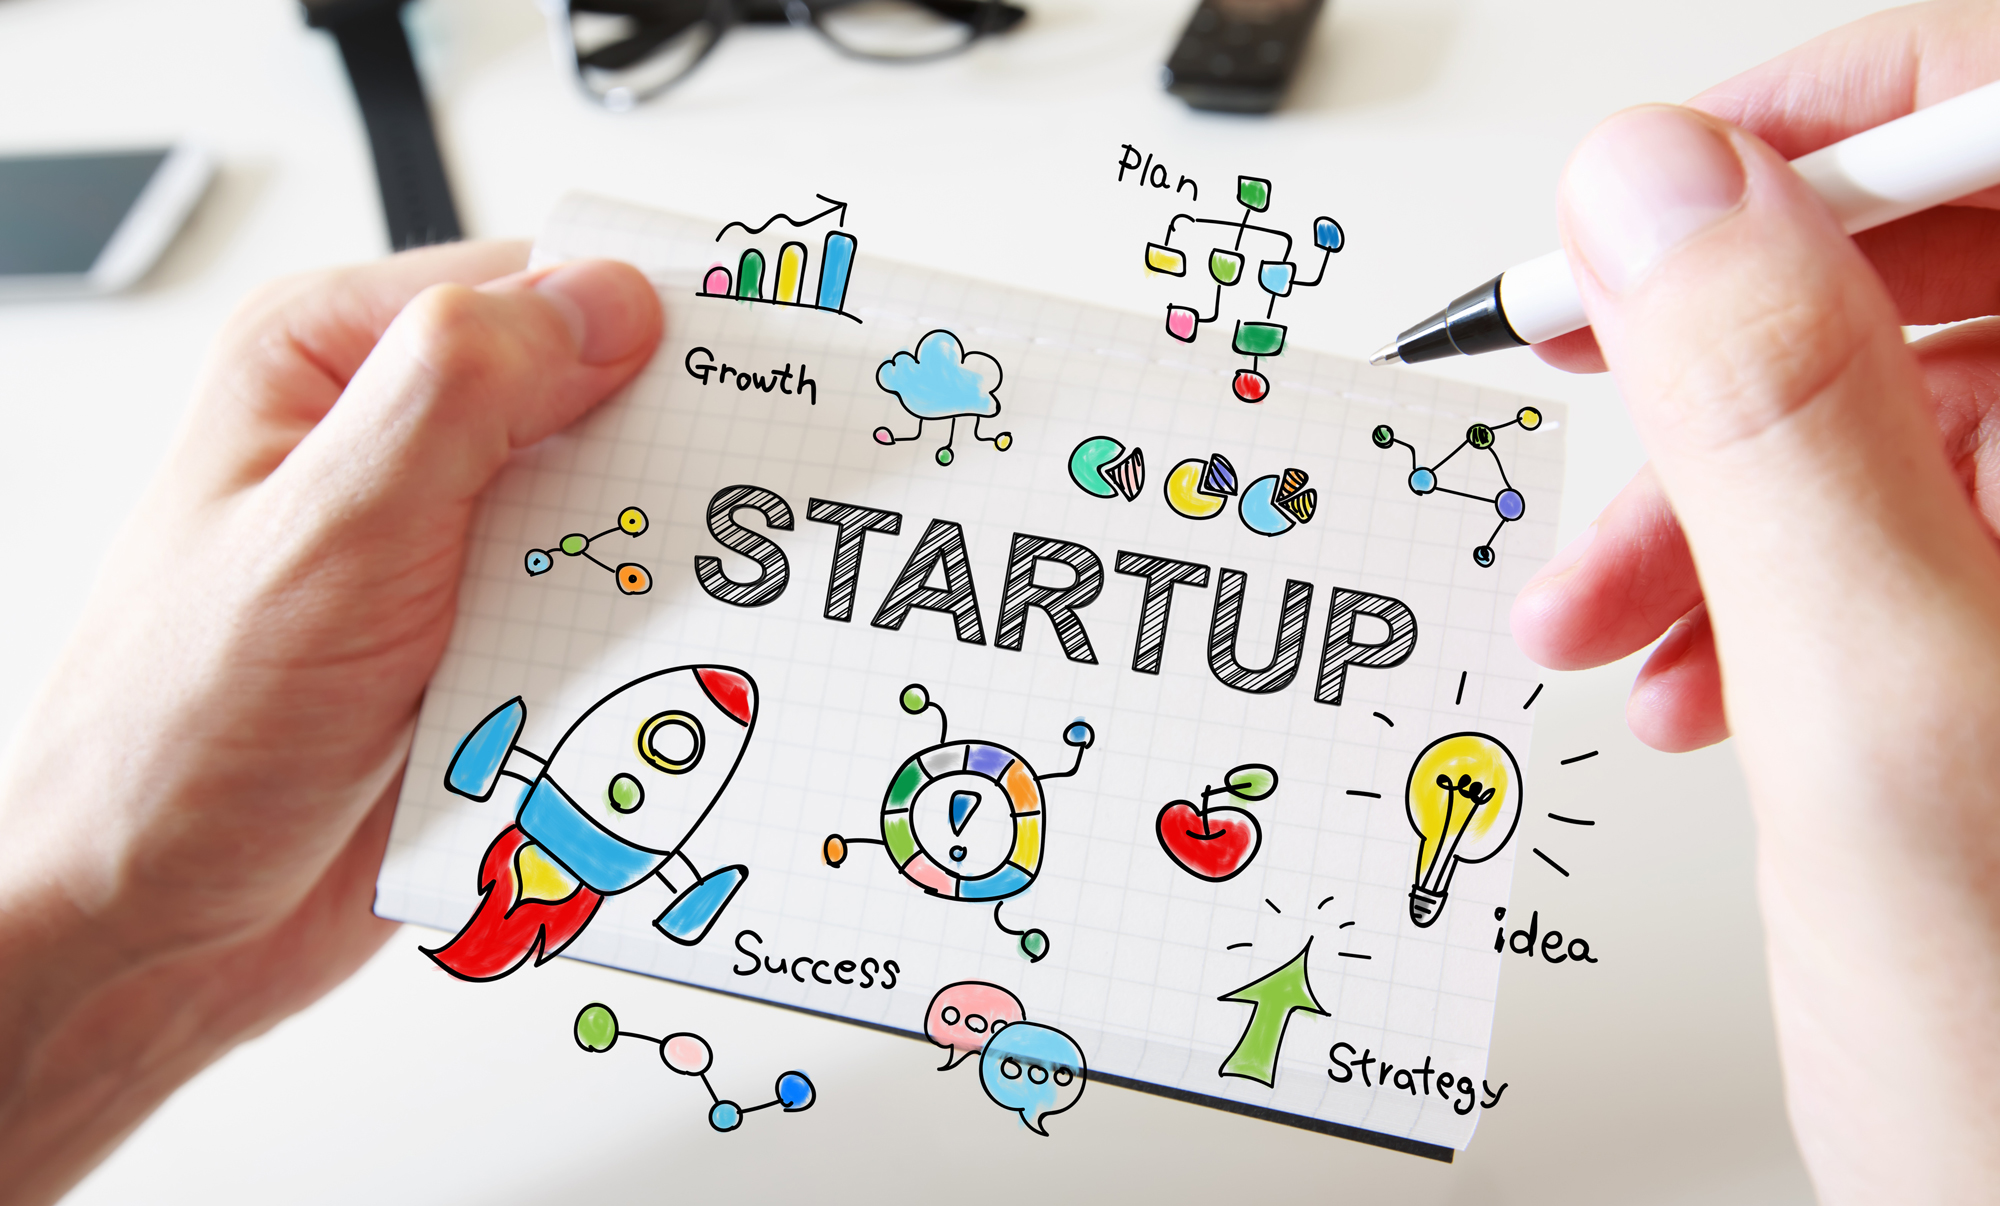 Website From an Idea - Starting Your Online Business